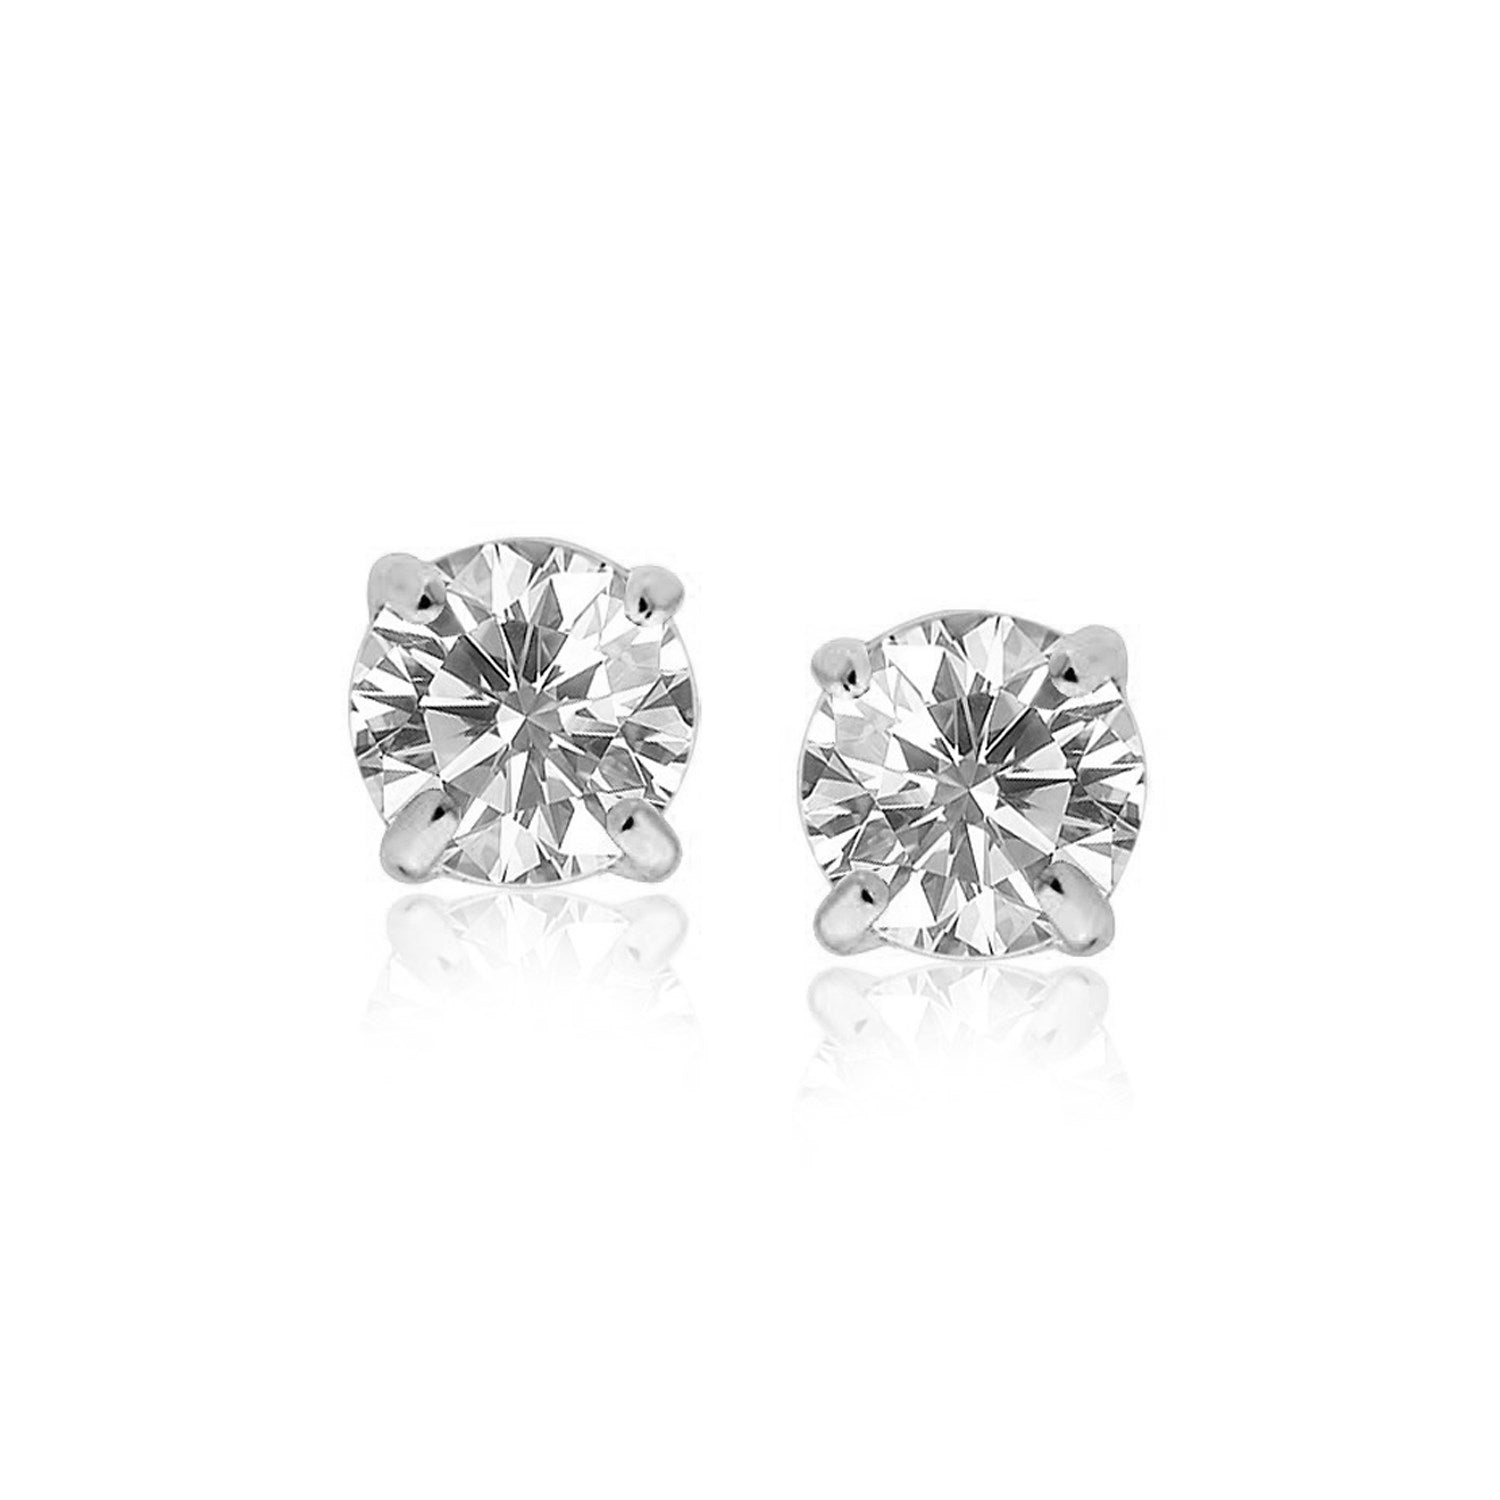 Original New York Style  Sterling Silver 8.0mm Round CZ Stud Earrings